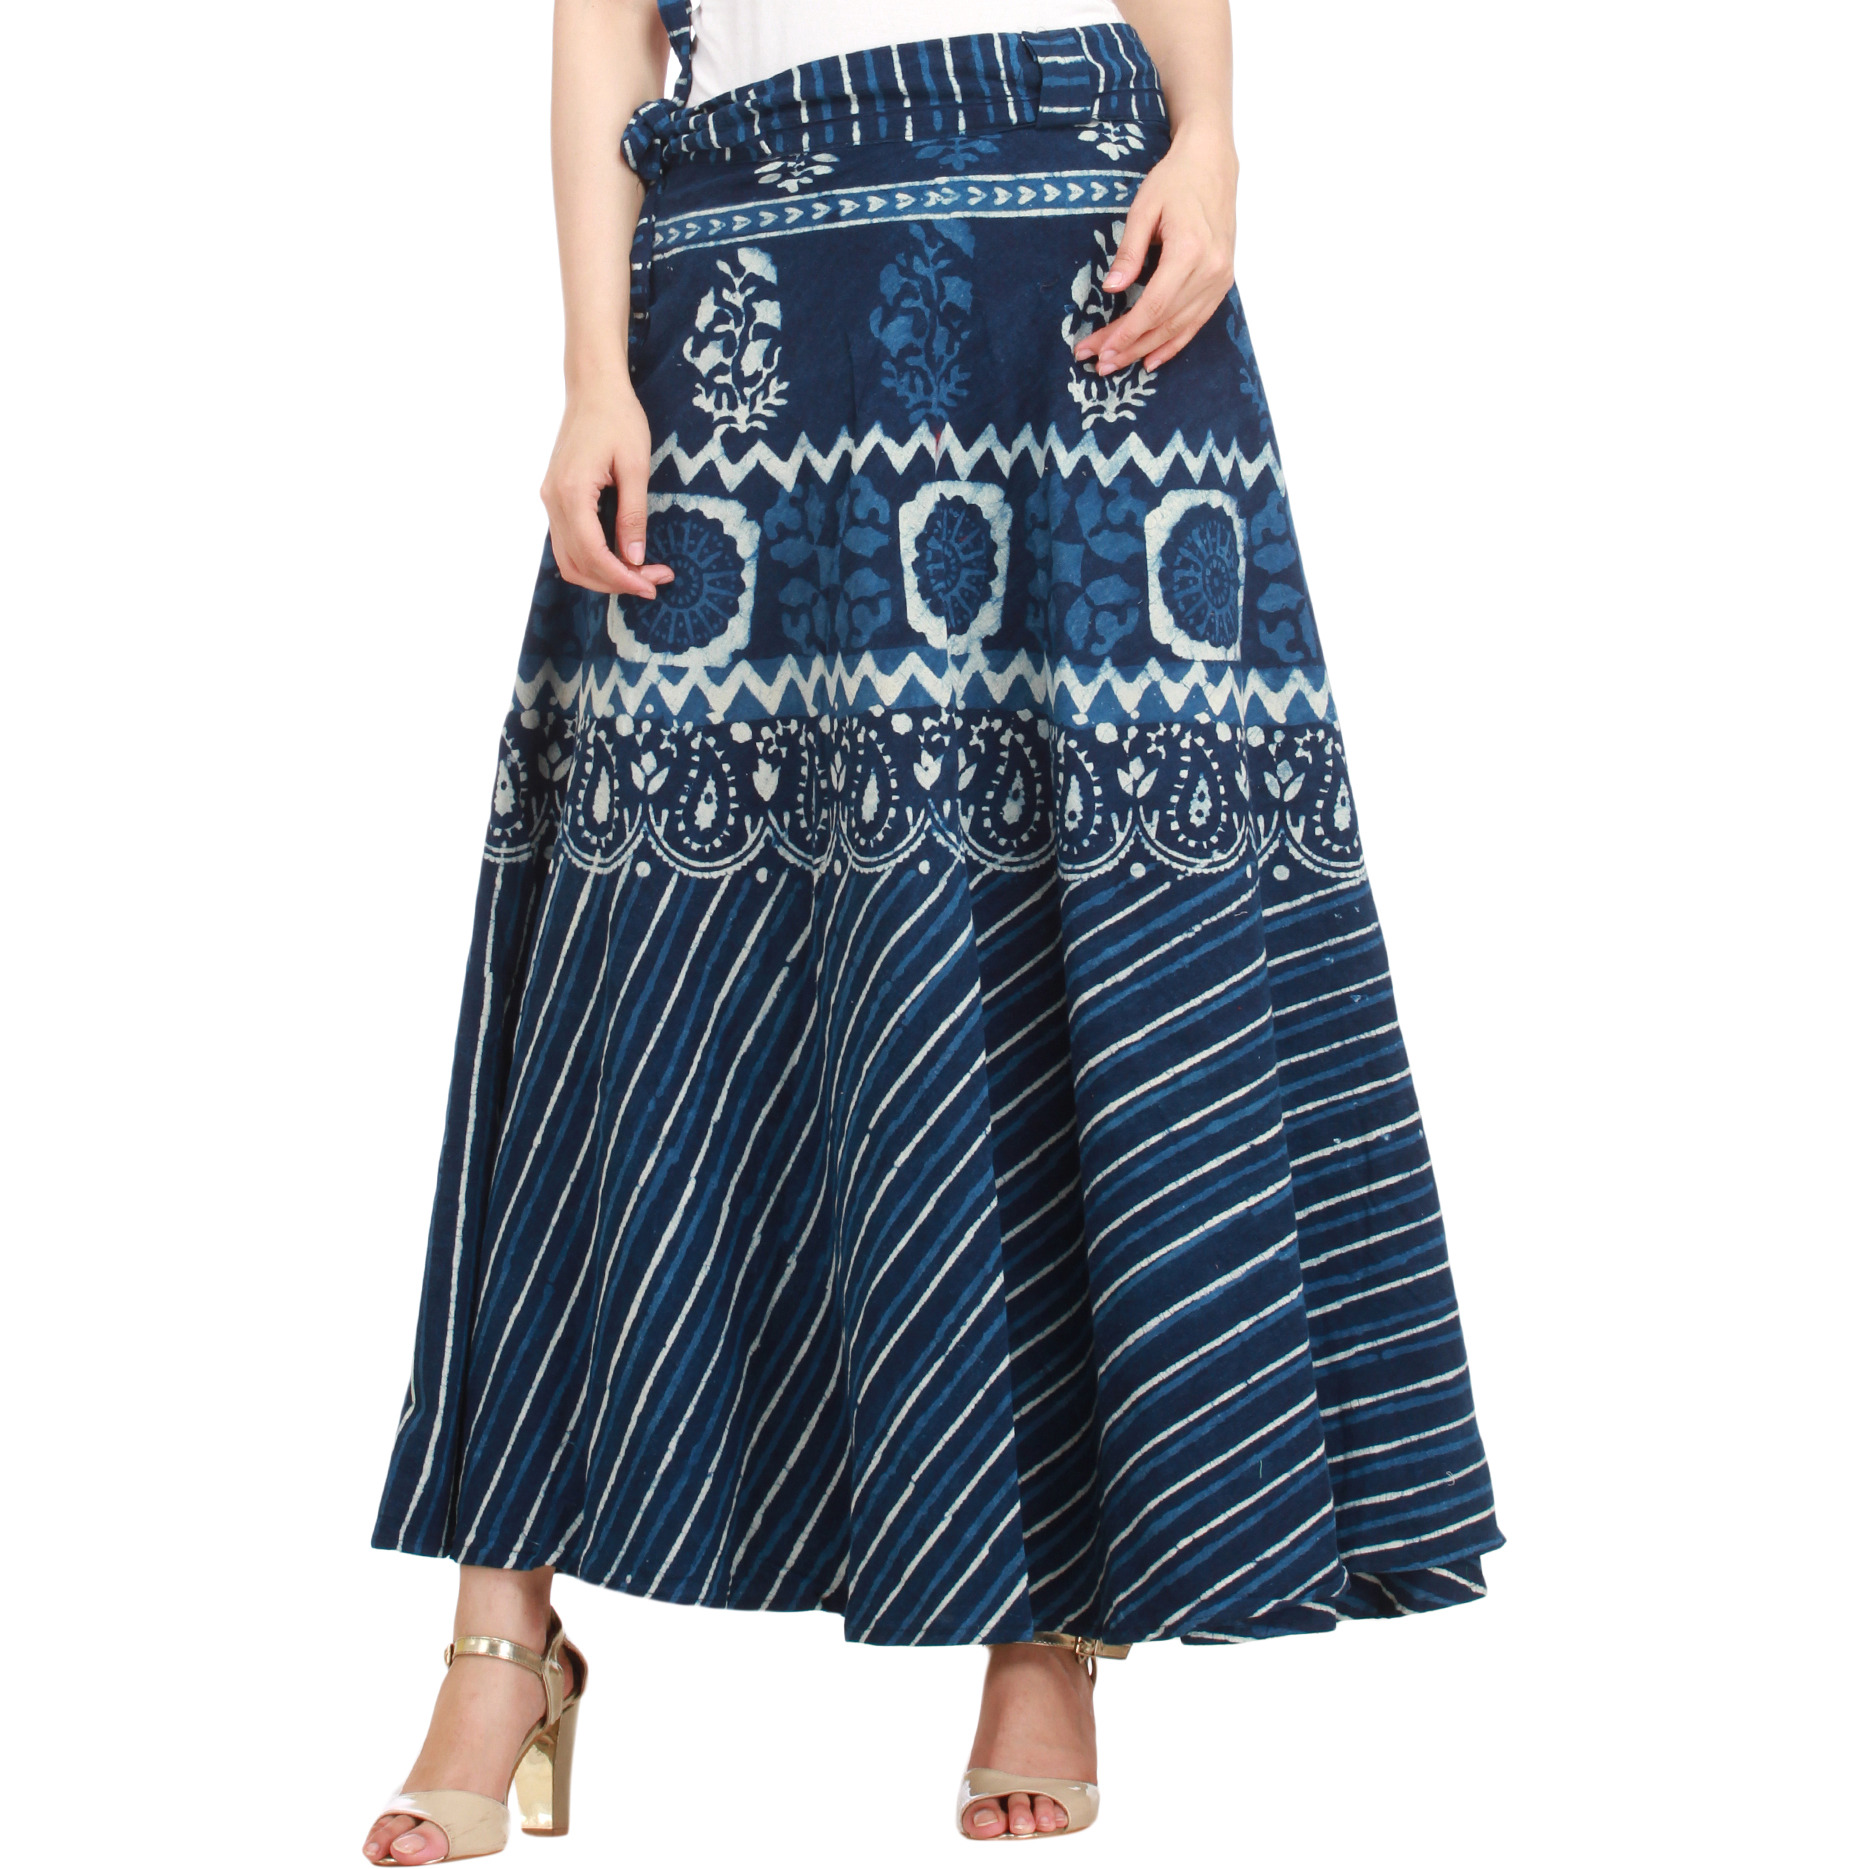 Medieval-Blue Block Printed Wrap-Around Skirt from Pilkhuwa